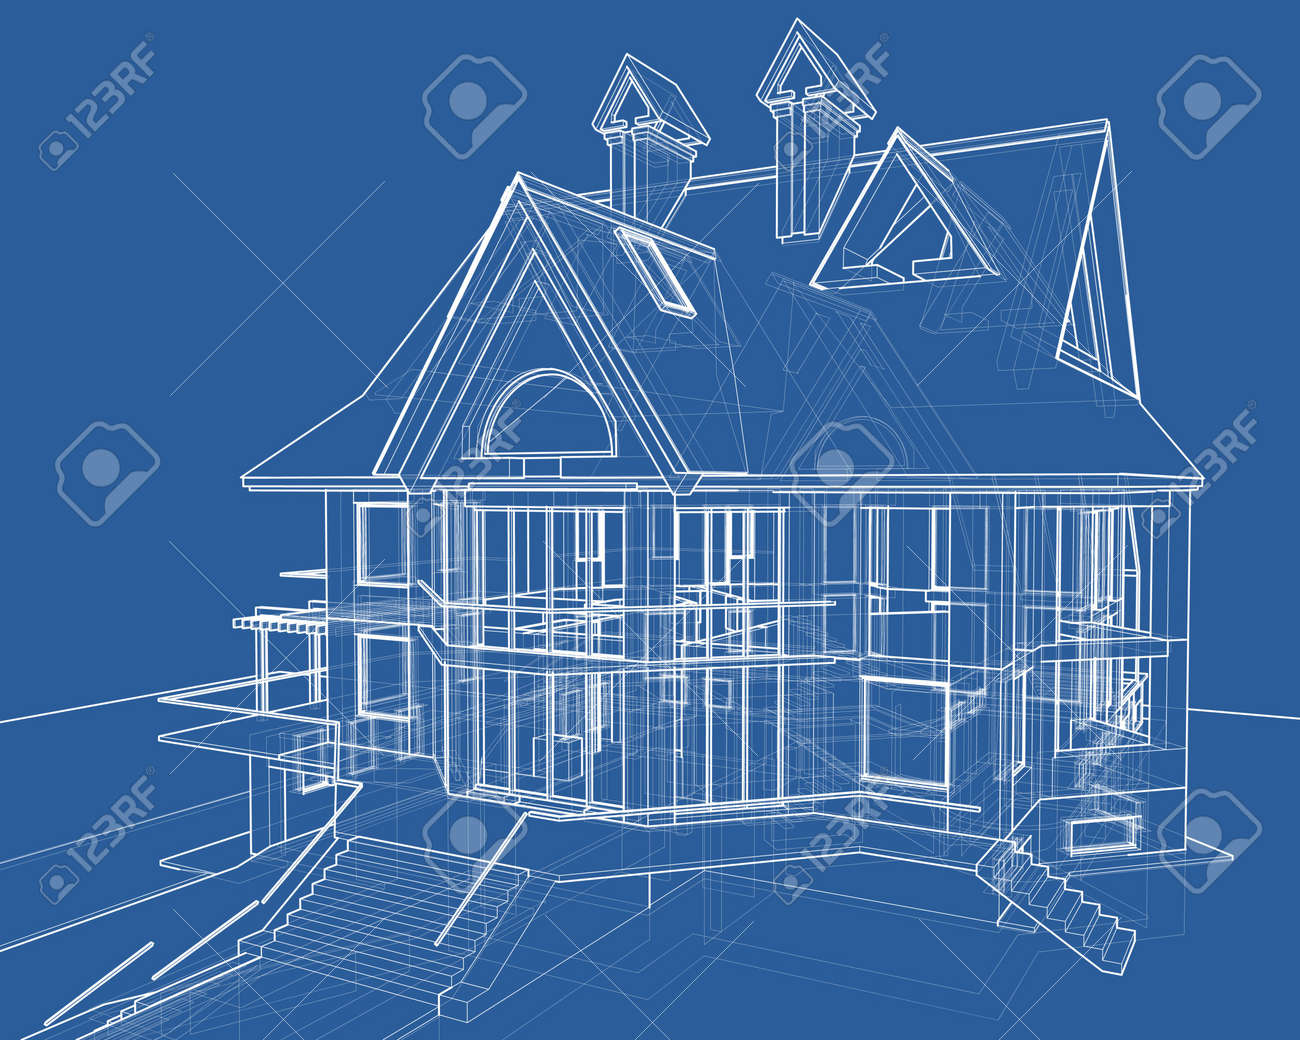 House blueprint 3d technical draw stock photo picture and royalty house blueprint 3d technical draw stock photo 2886140 malvernweather Gallery